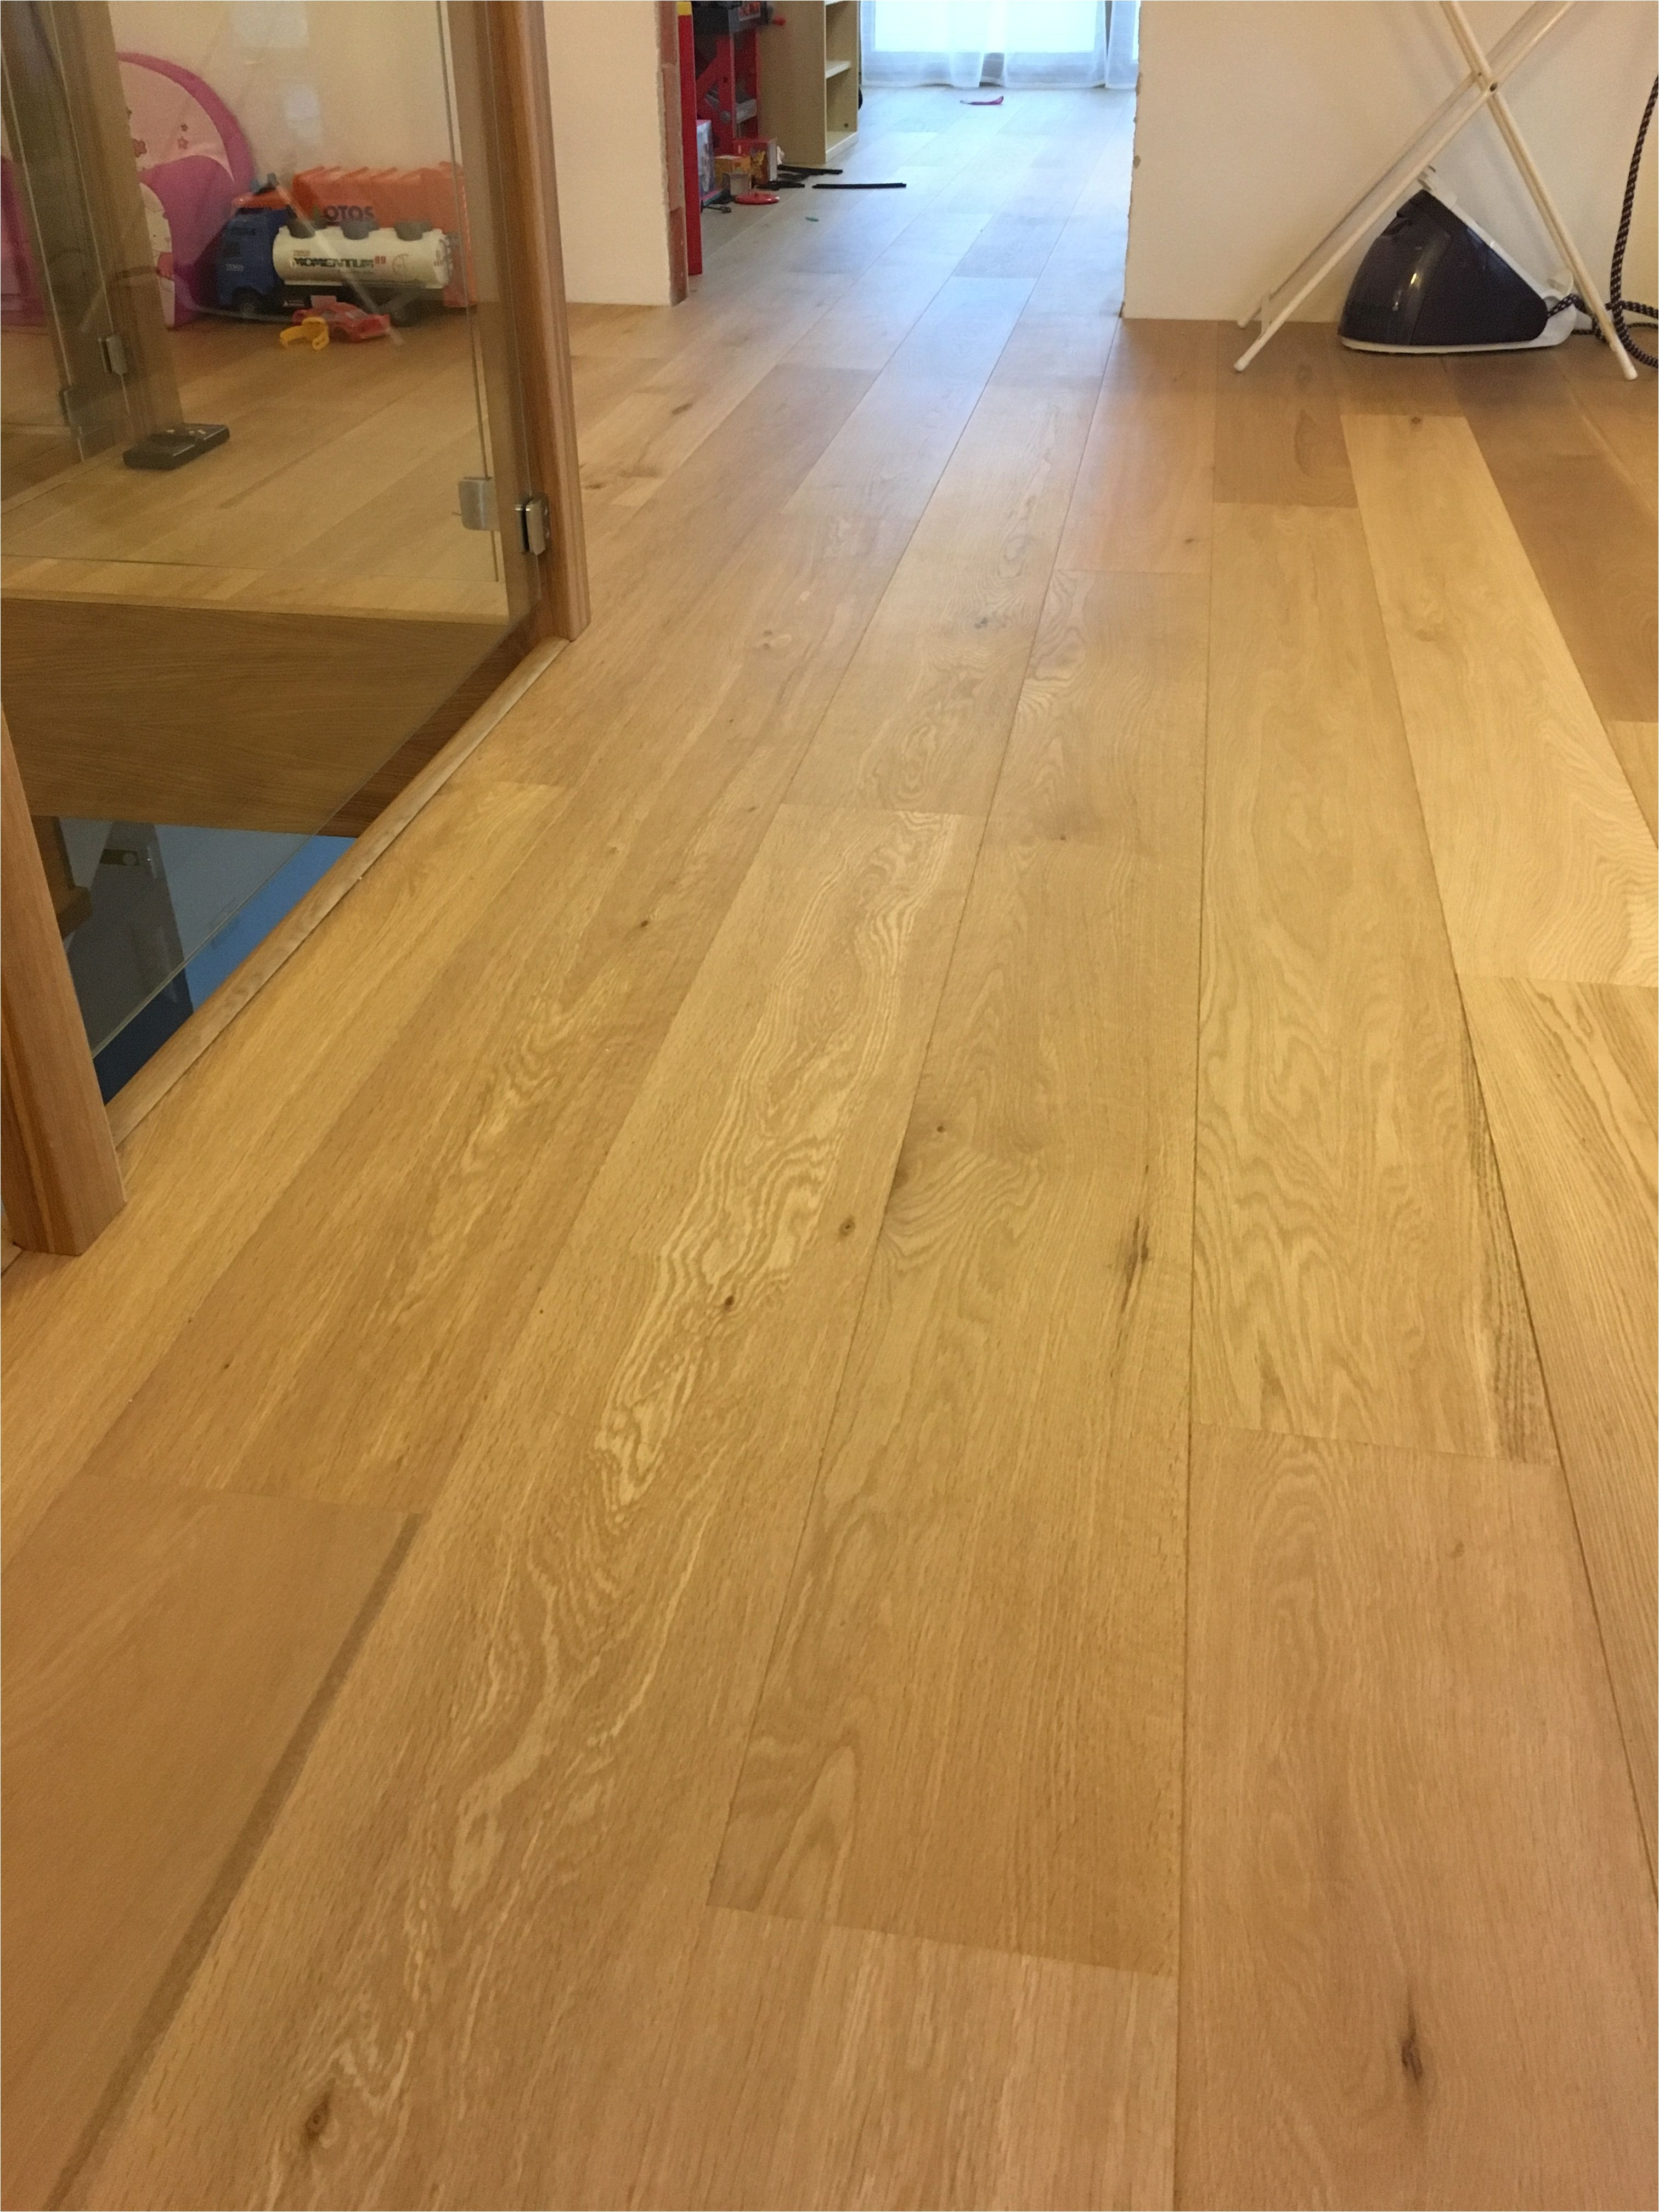 is hardwood flooring good for kitchens of best laminate flooring made in usa naturalny dub od belgickeho va in best laminate flooring made in usa naturalny dub od belgickeho va robcu lamett inspiration of waterproof